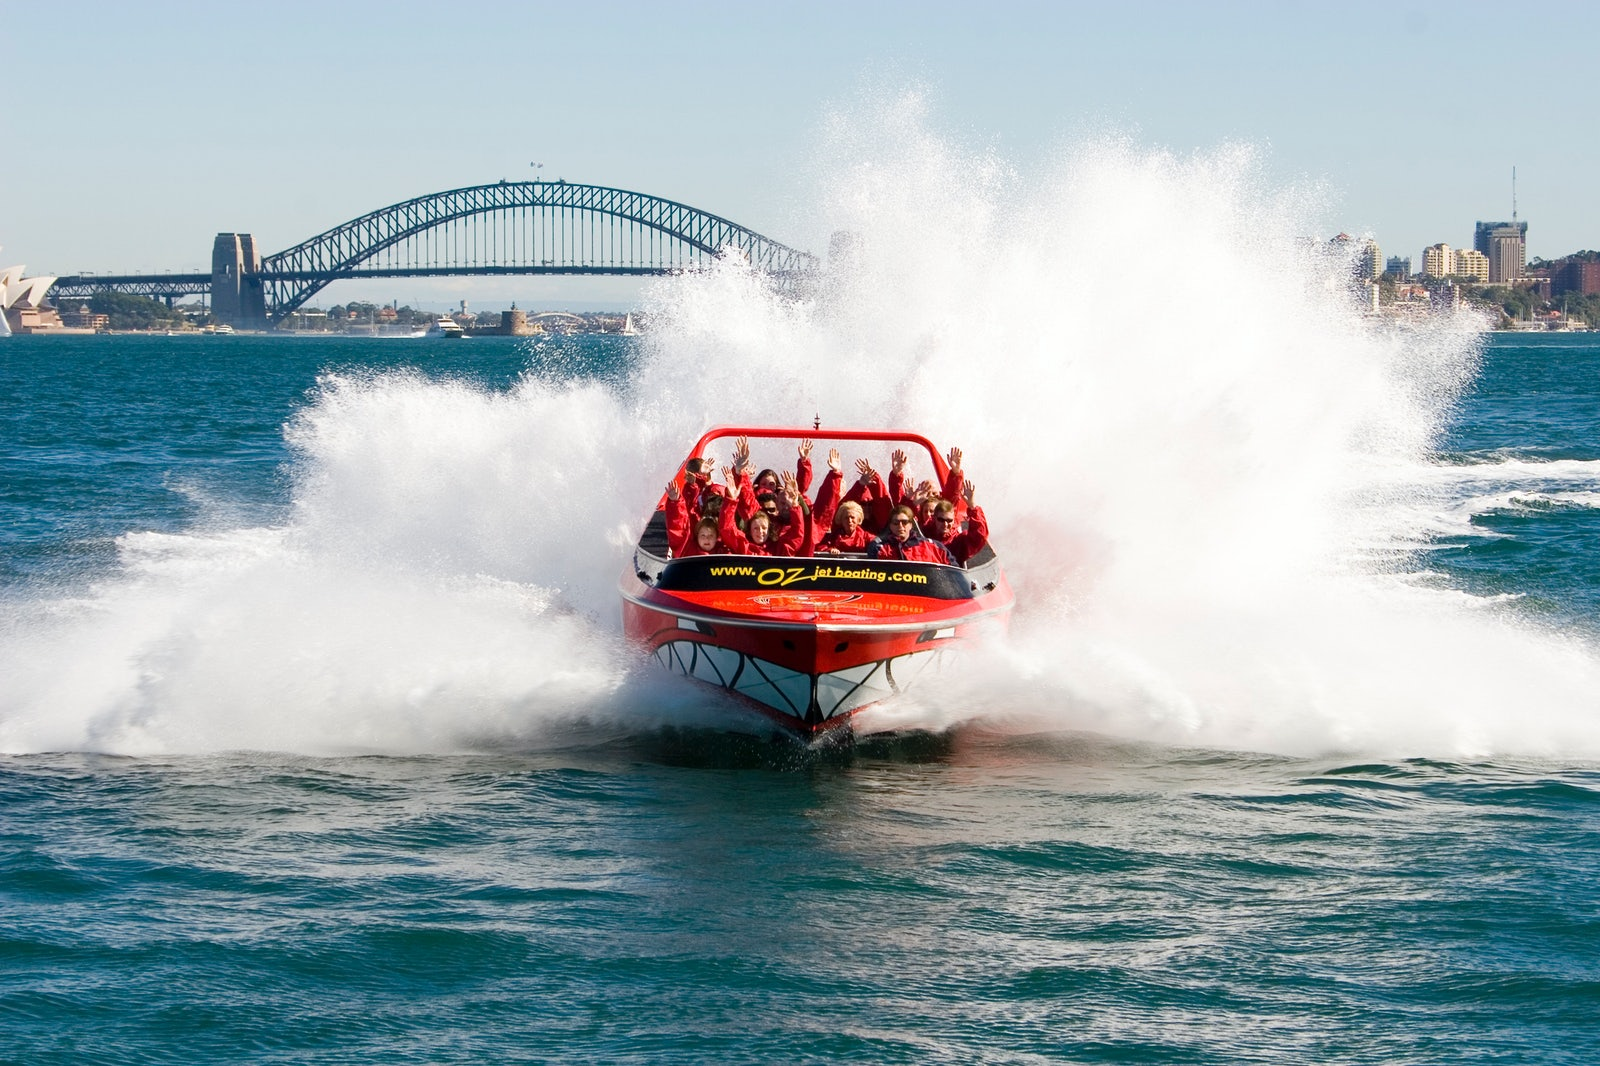 A picture of a jet boat on the Circular Quay near Surry Hills Sydney